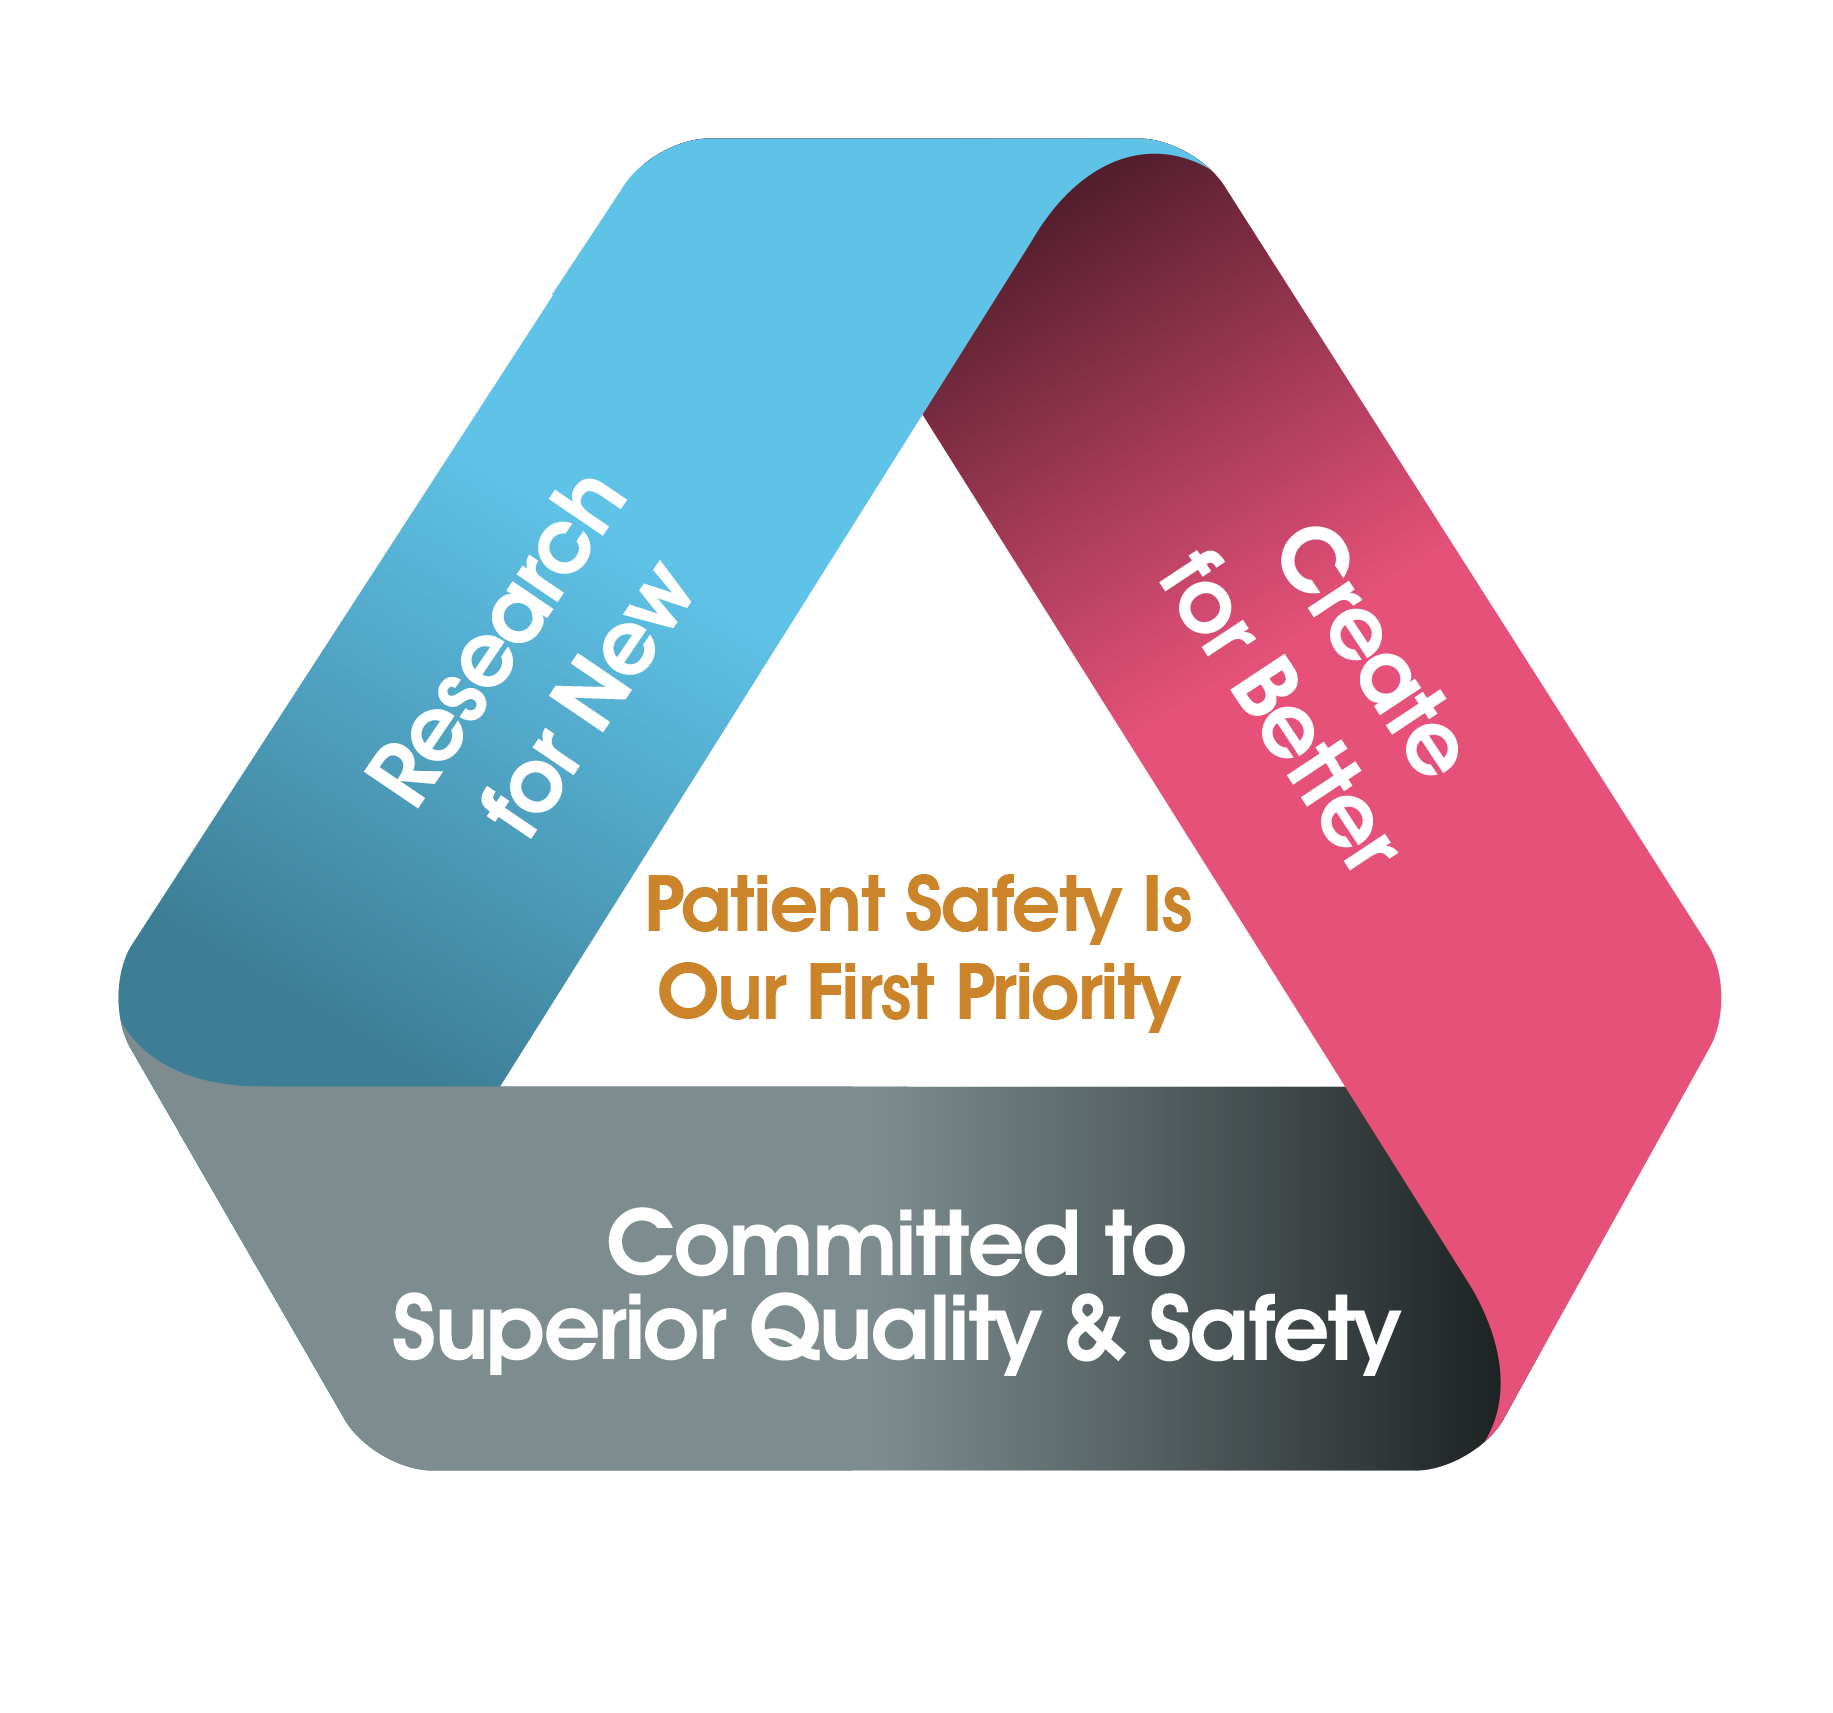 USM Healthcare values